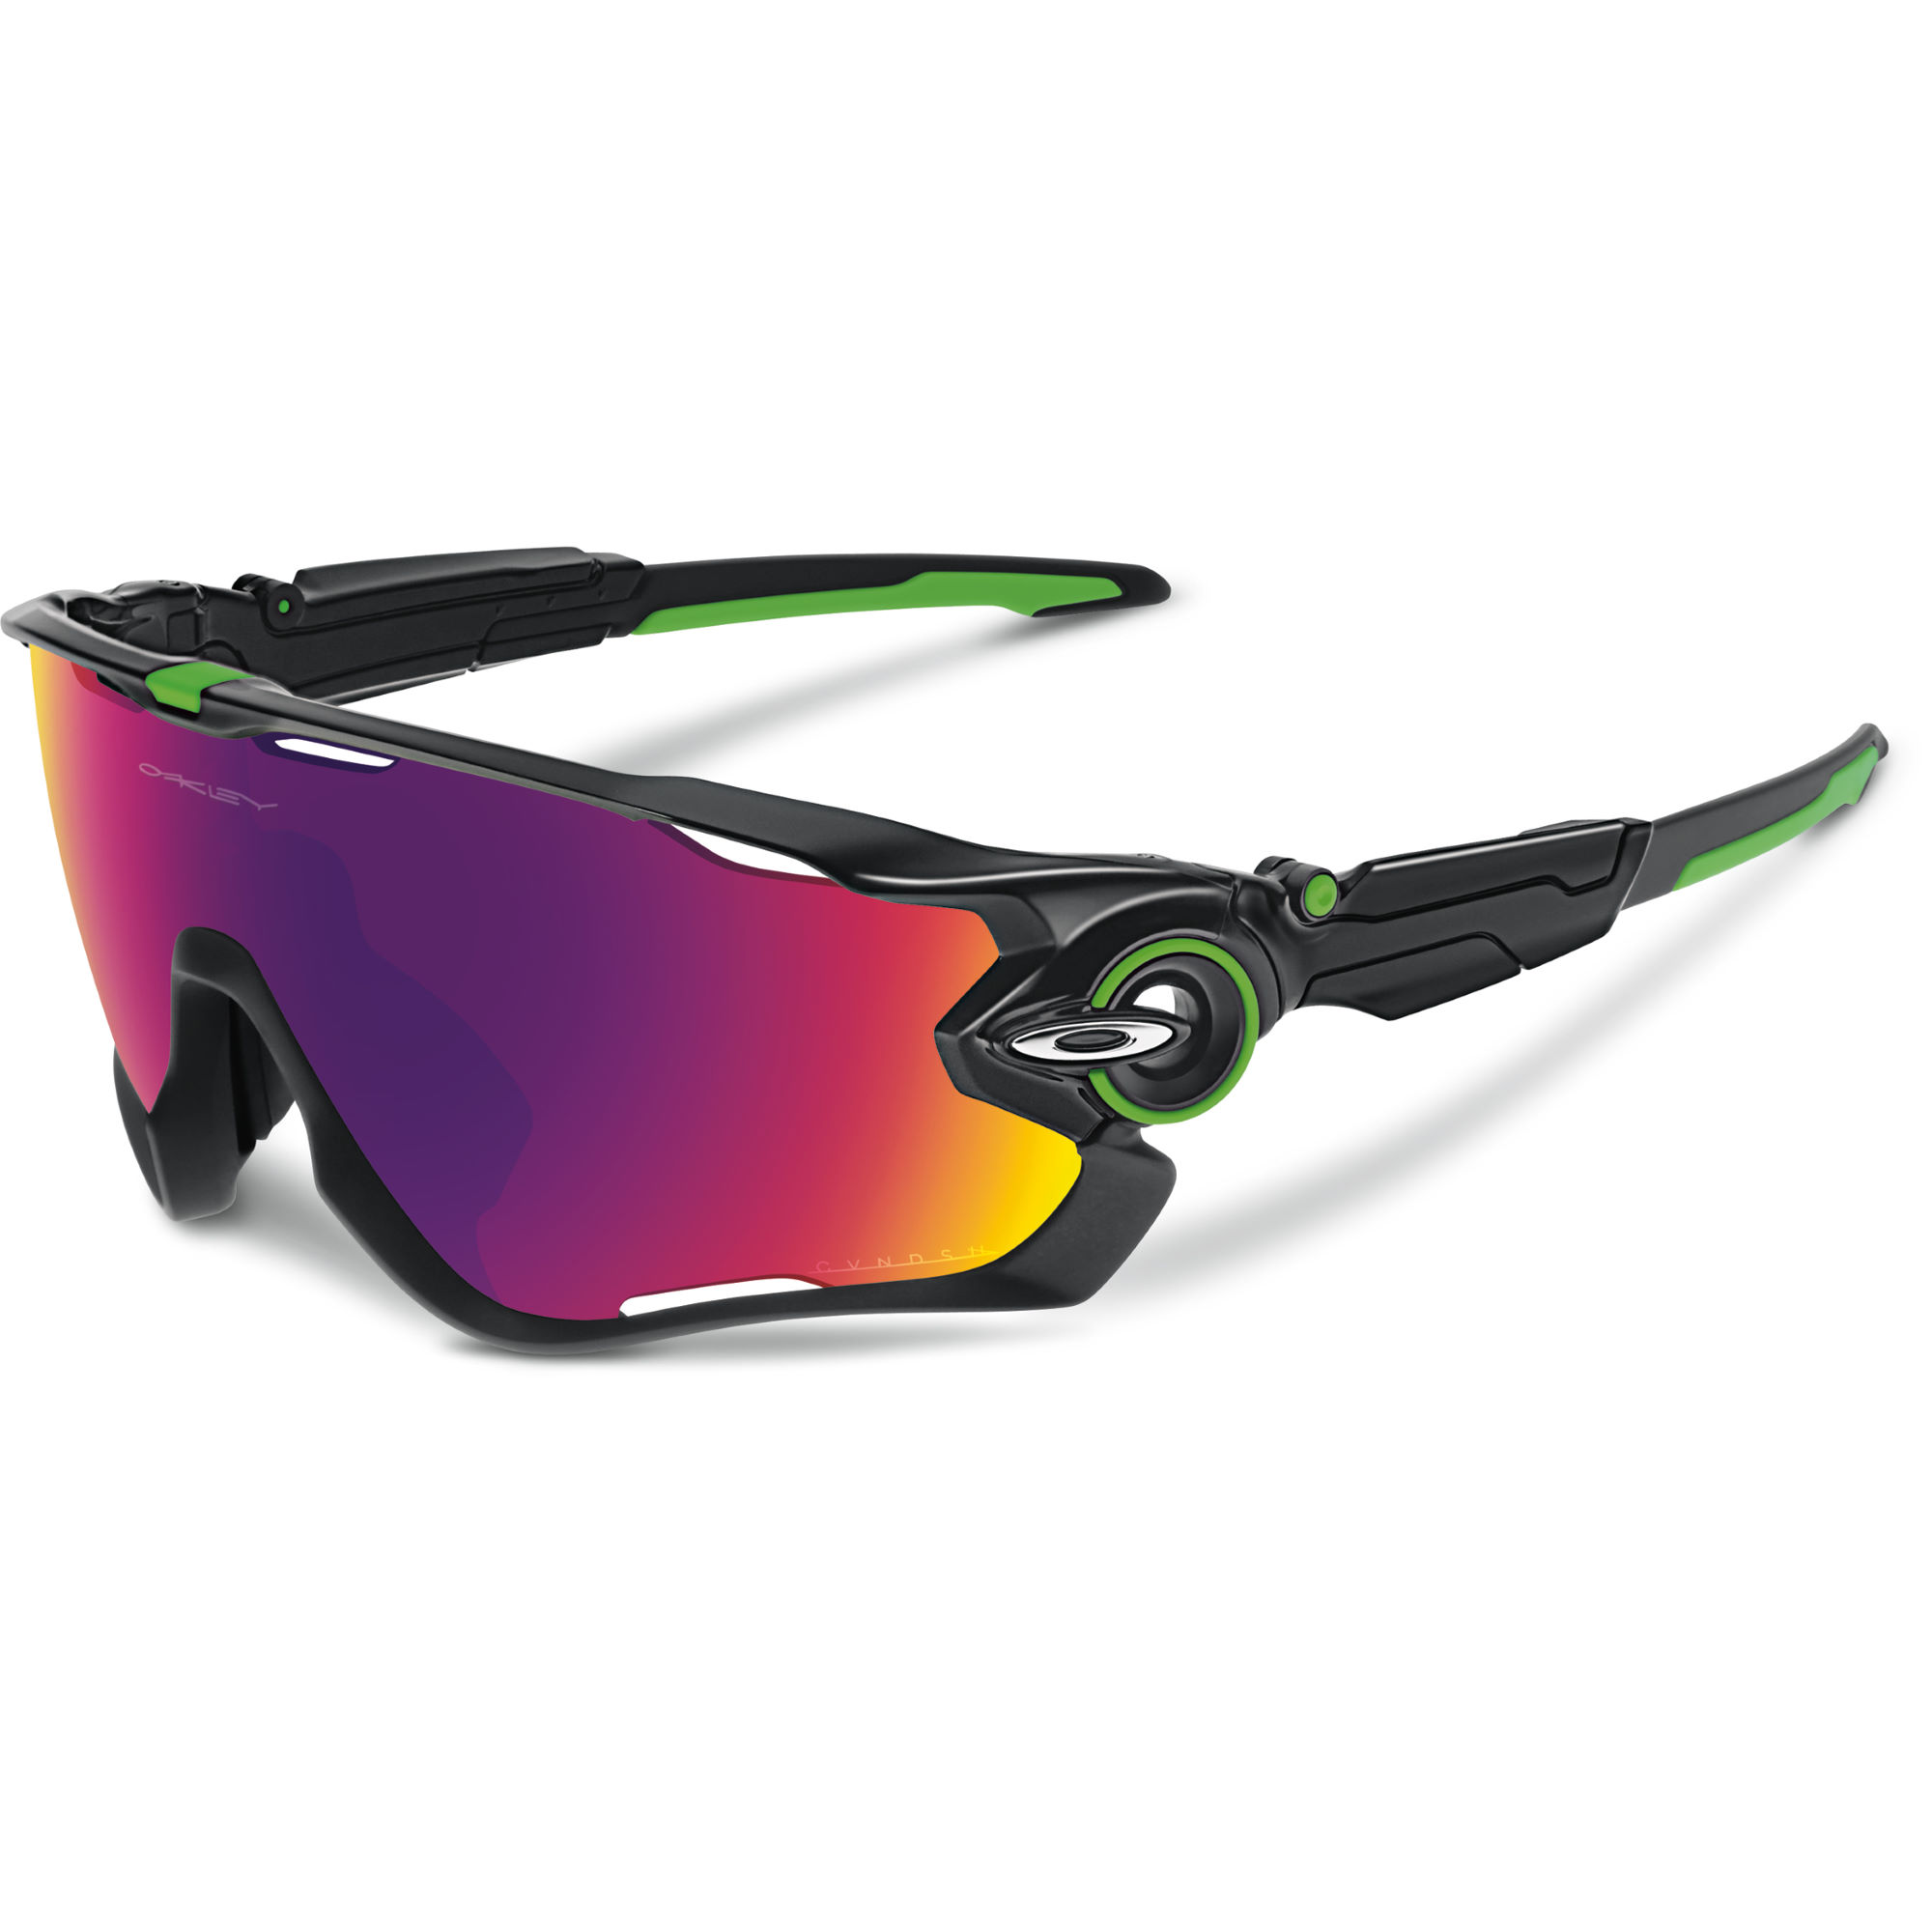 Oakley sunglasses asian fit - Oakley Mark Cavendish Edition Jawbreaker Sunglasses